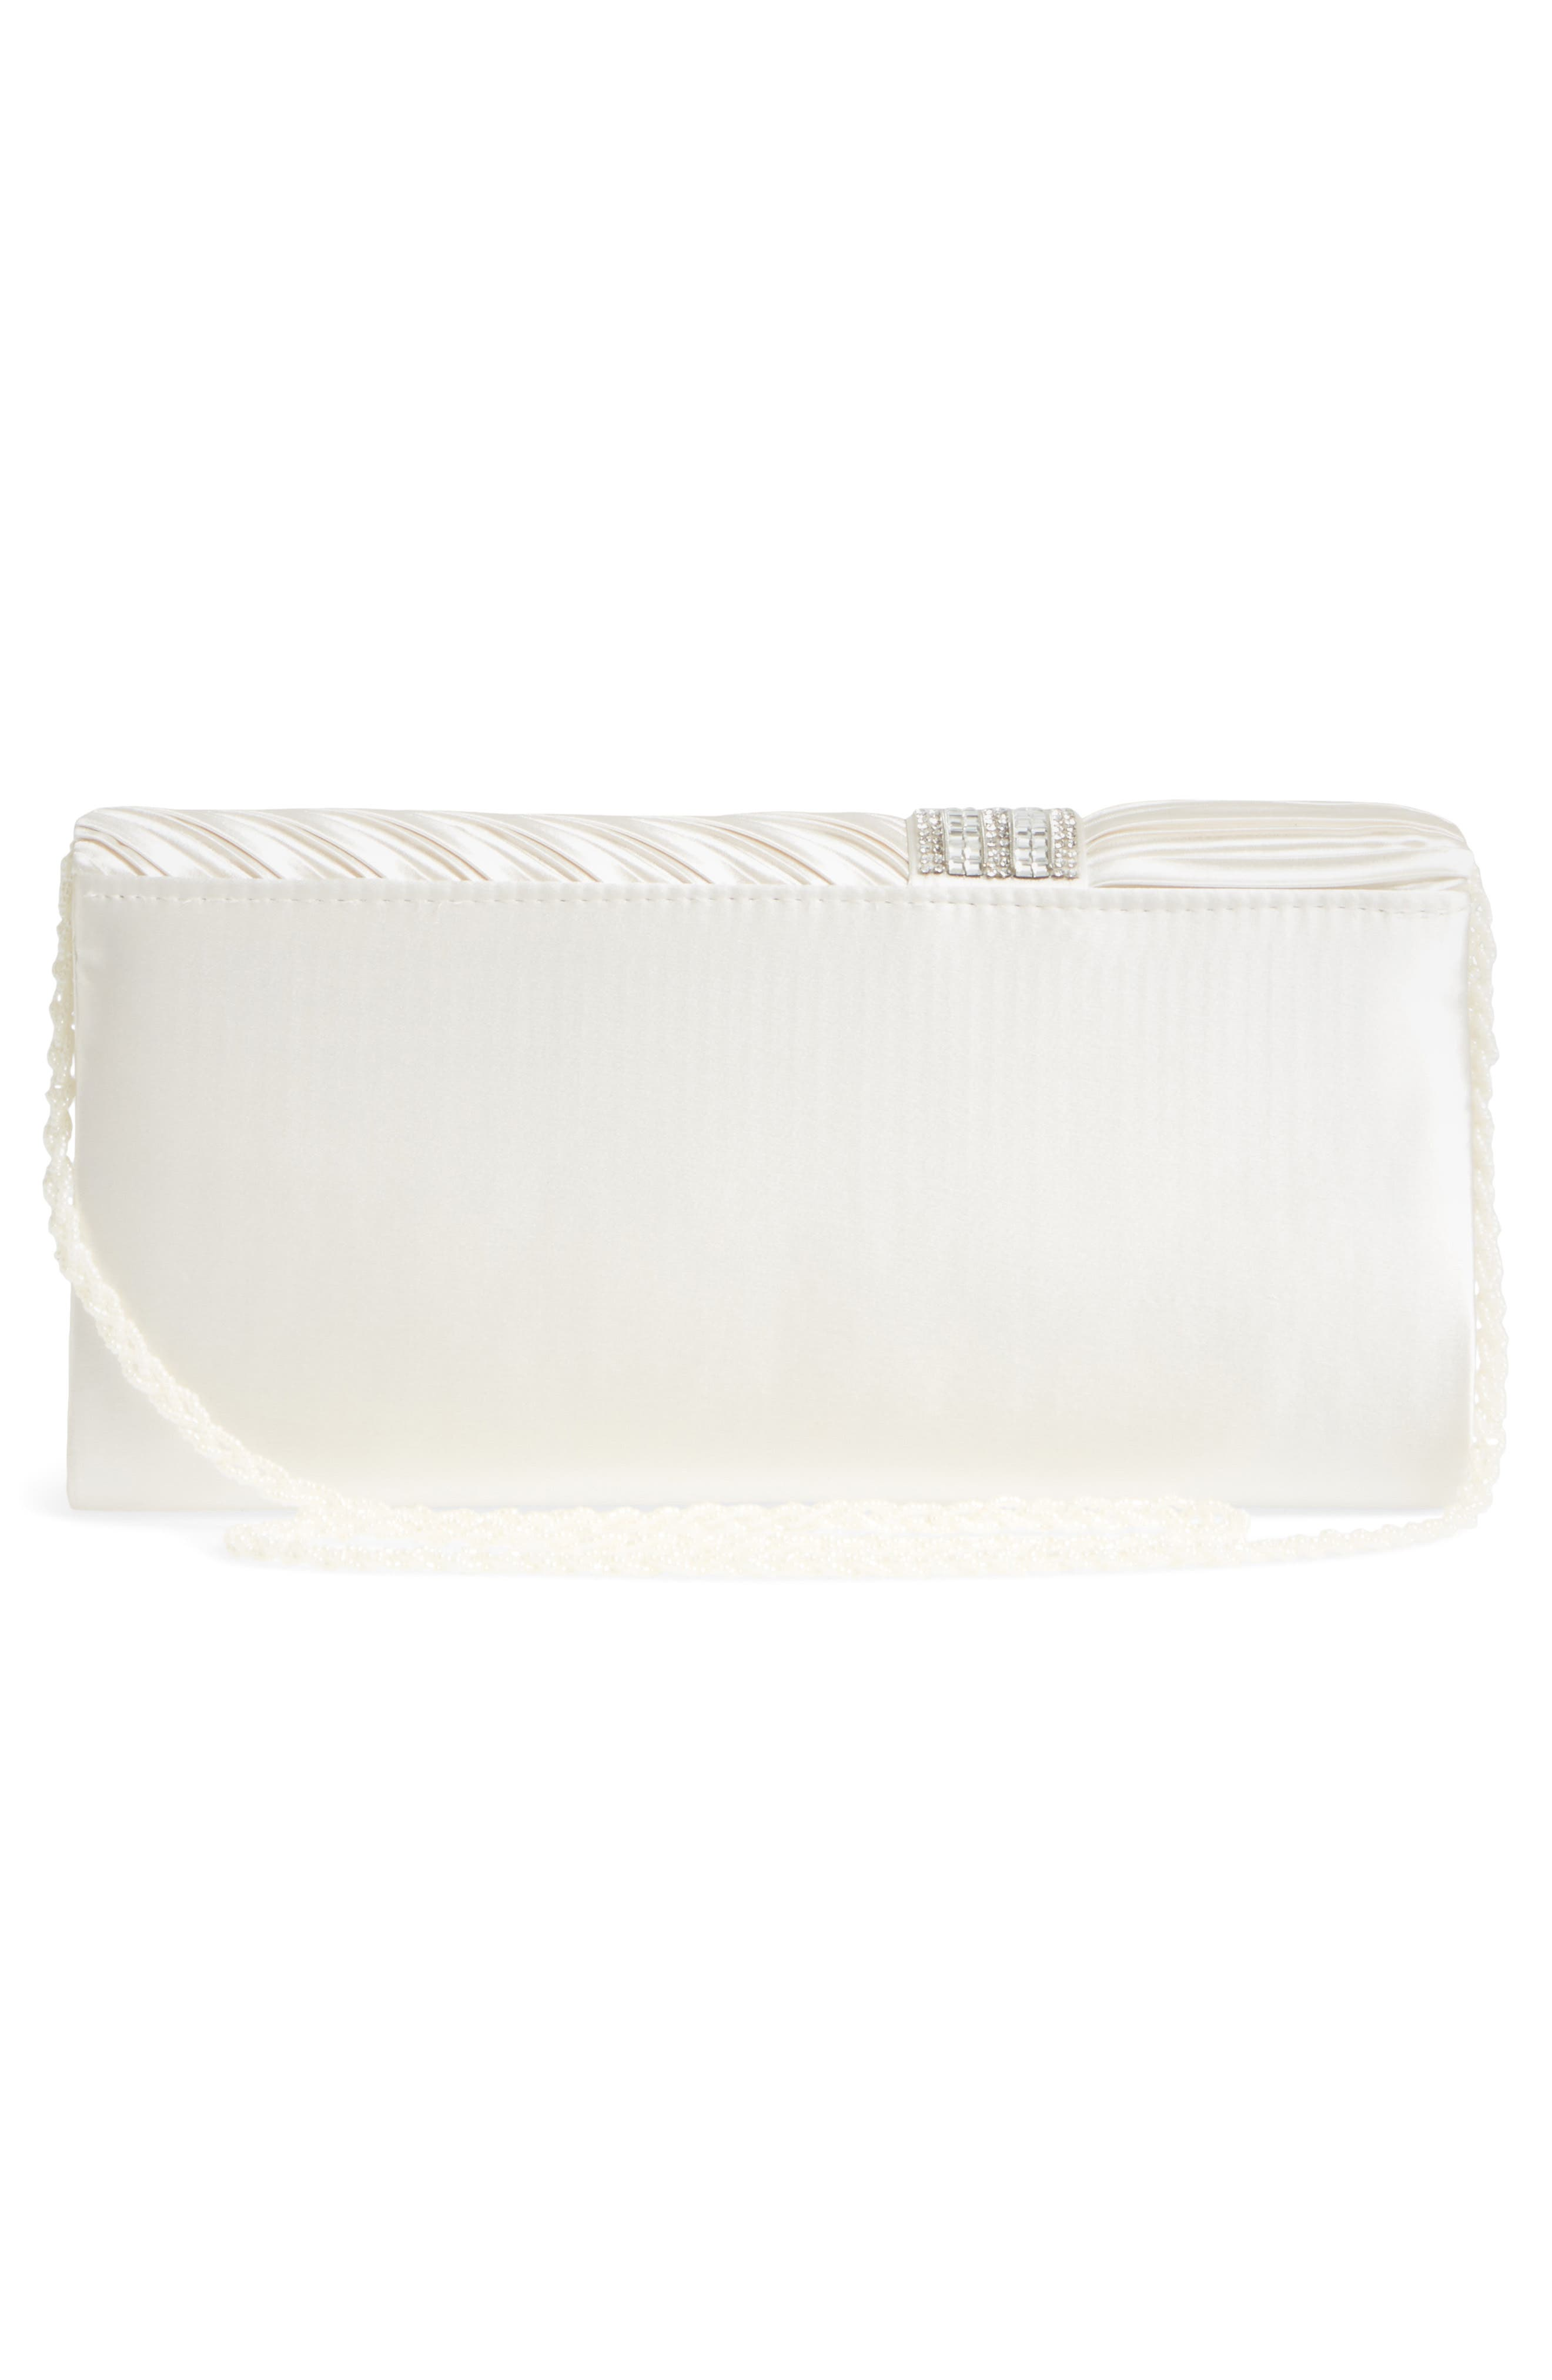 Daylie Pleated Satin Clutch,                             Alternate thumbnail 3, color,                             Ivory